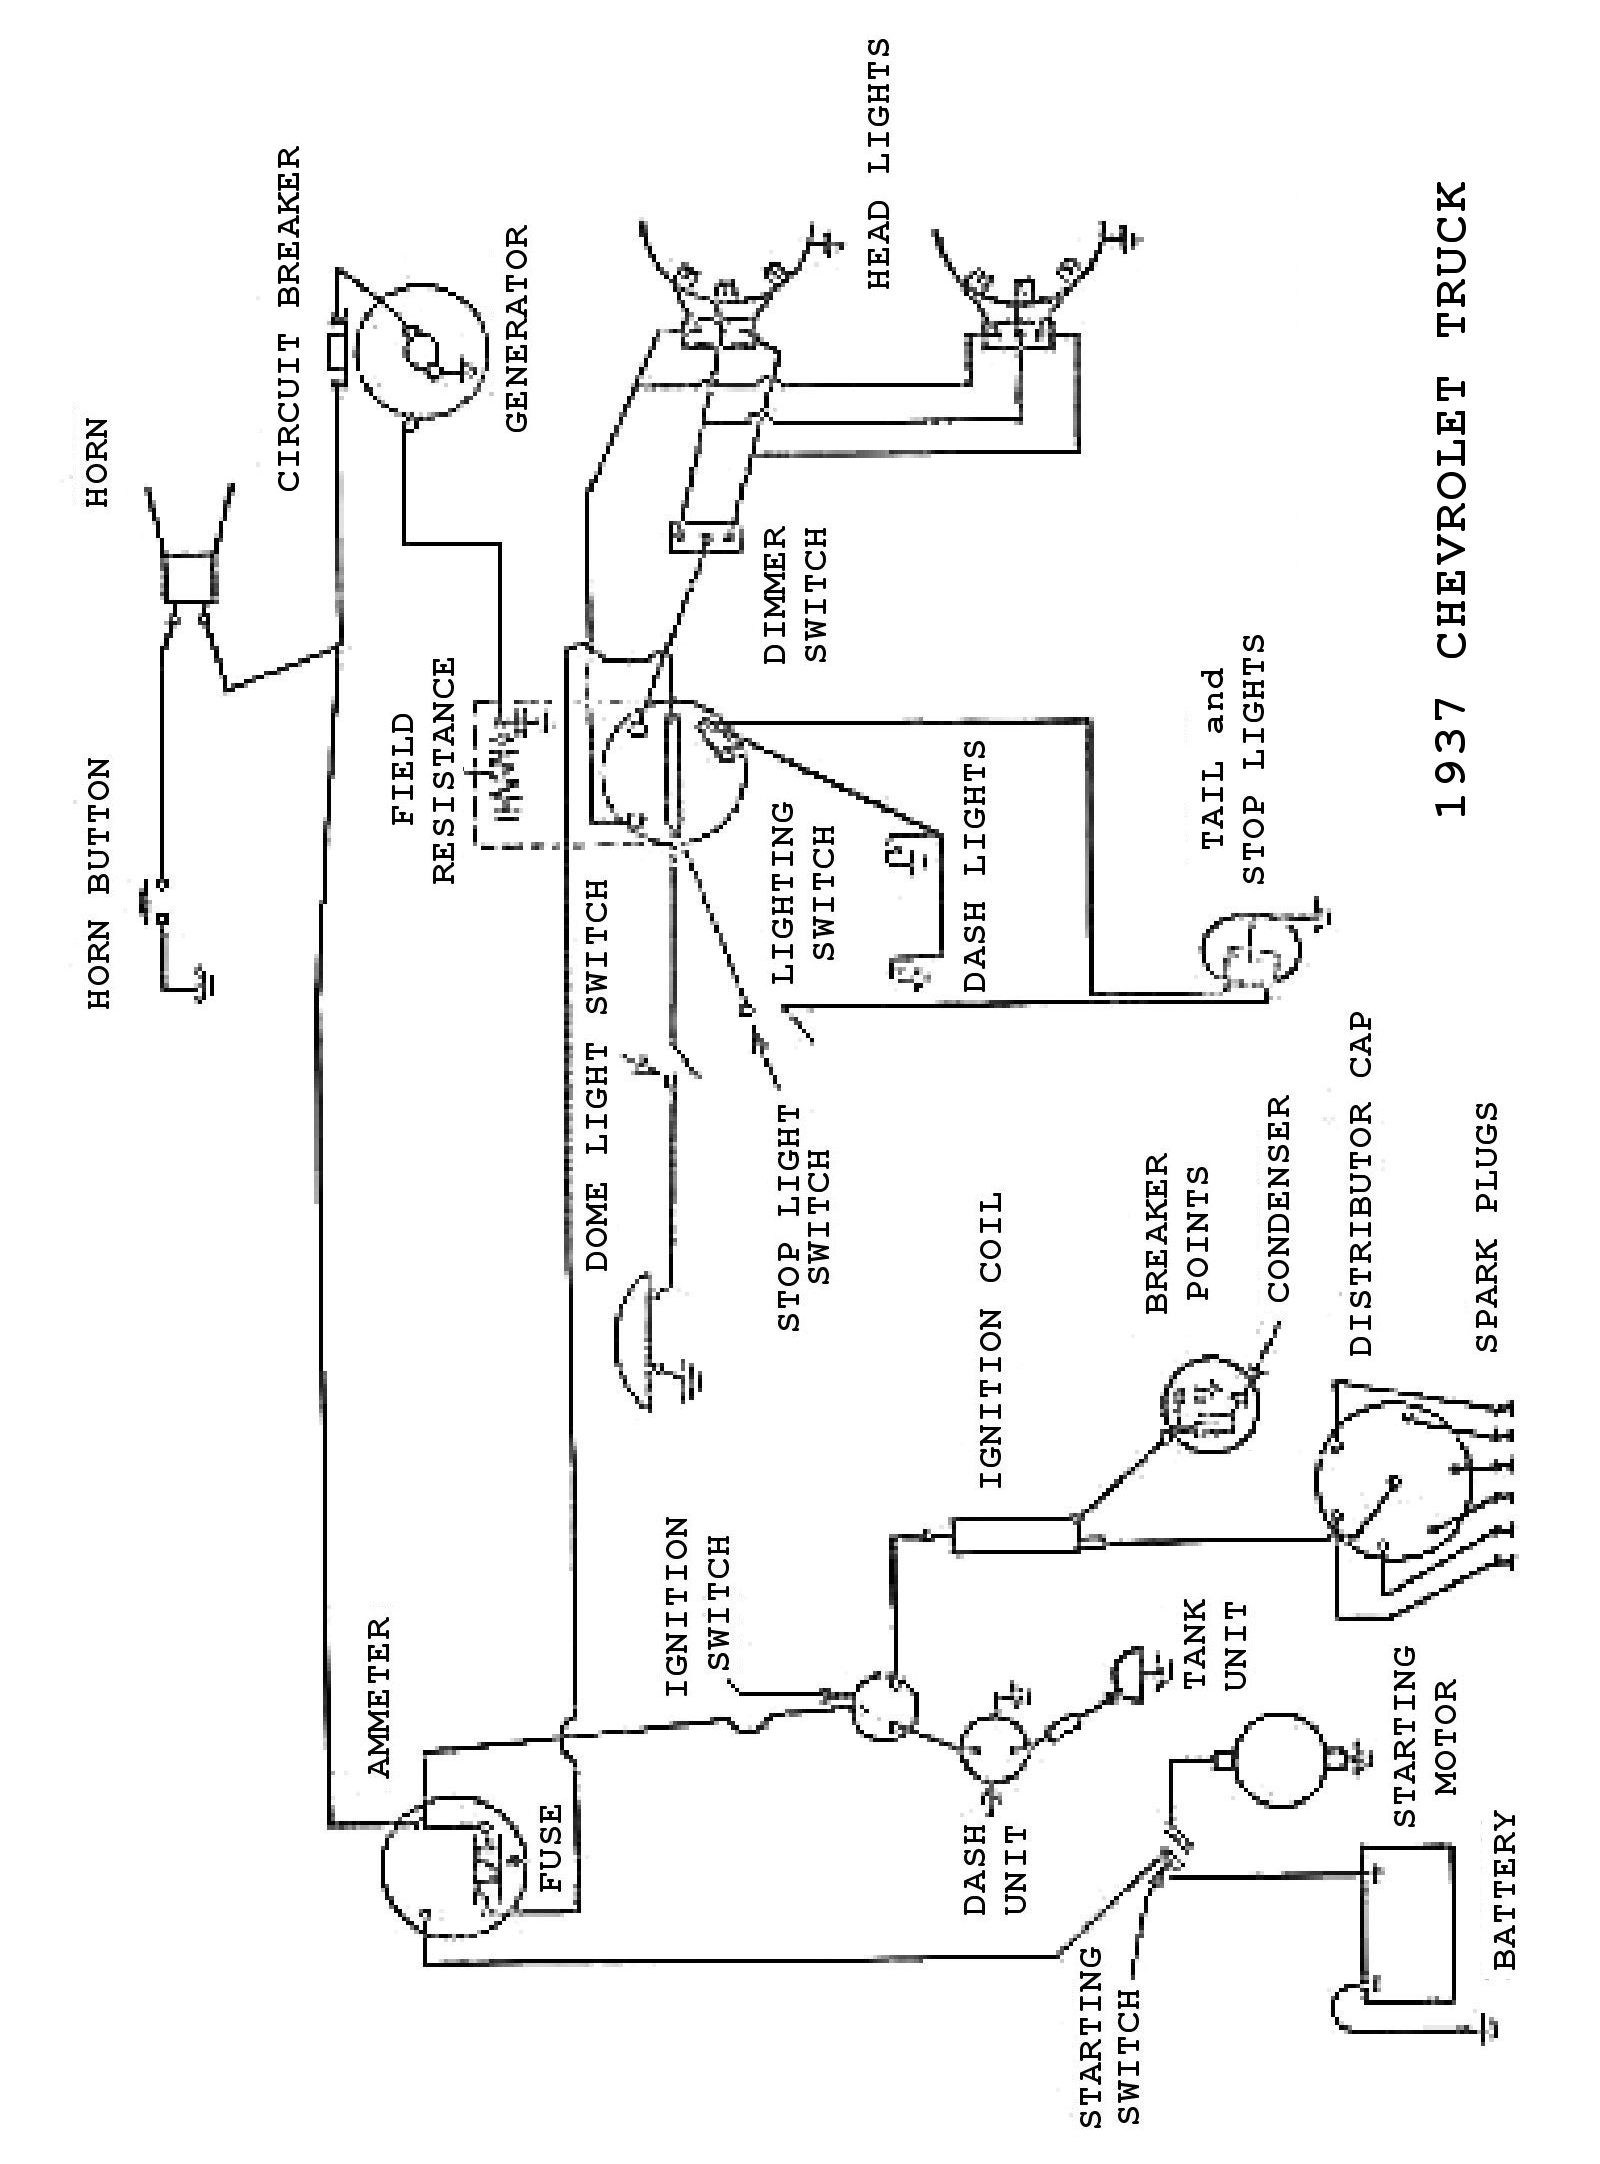 WRG-5047] Wd45 Wiring Diagram on